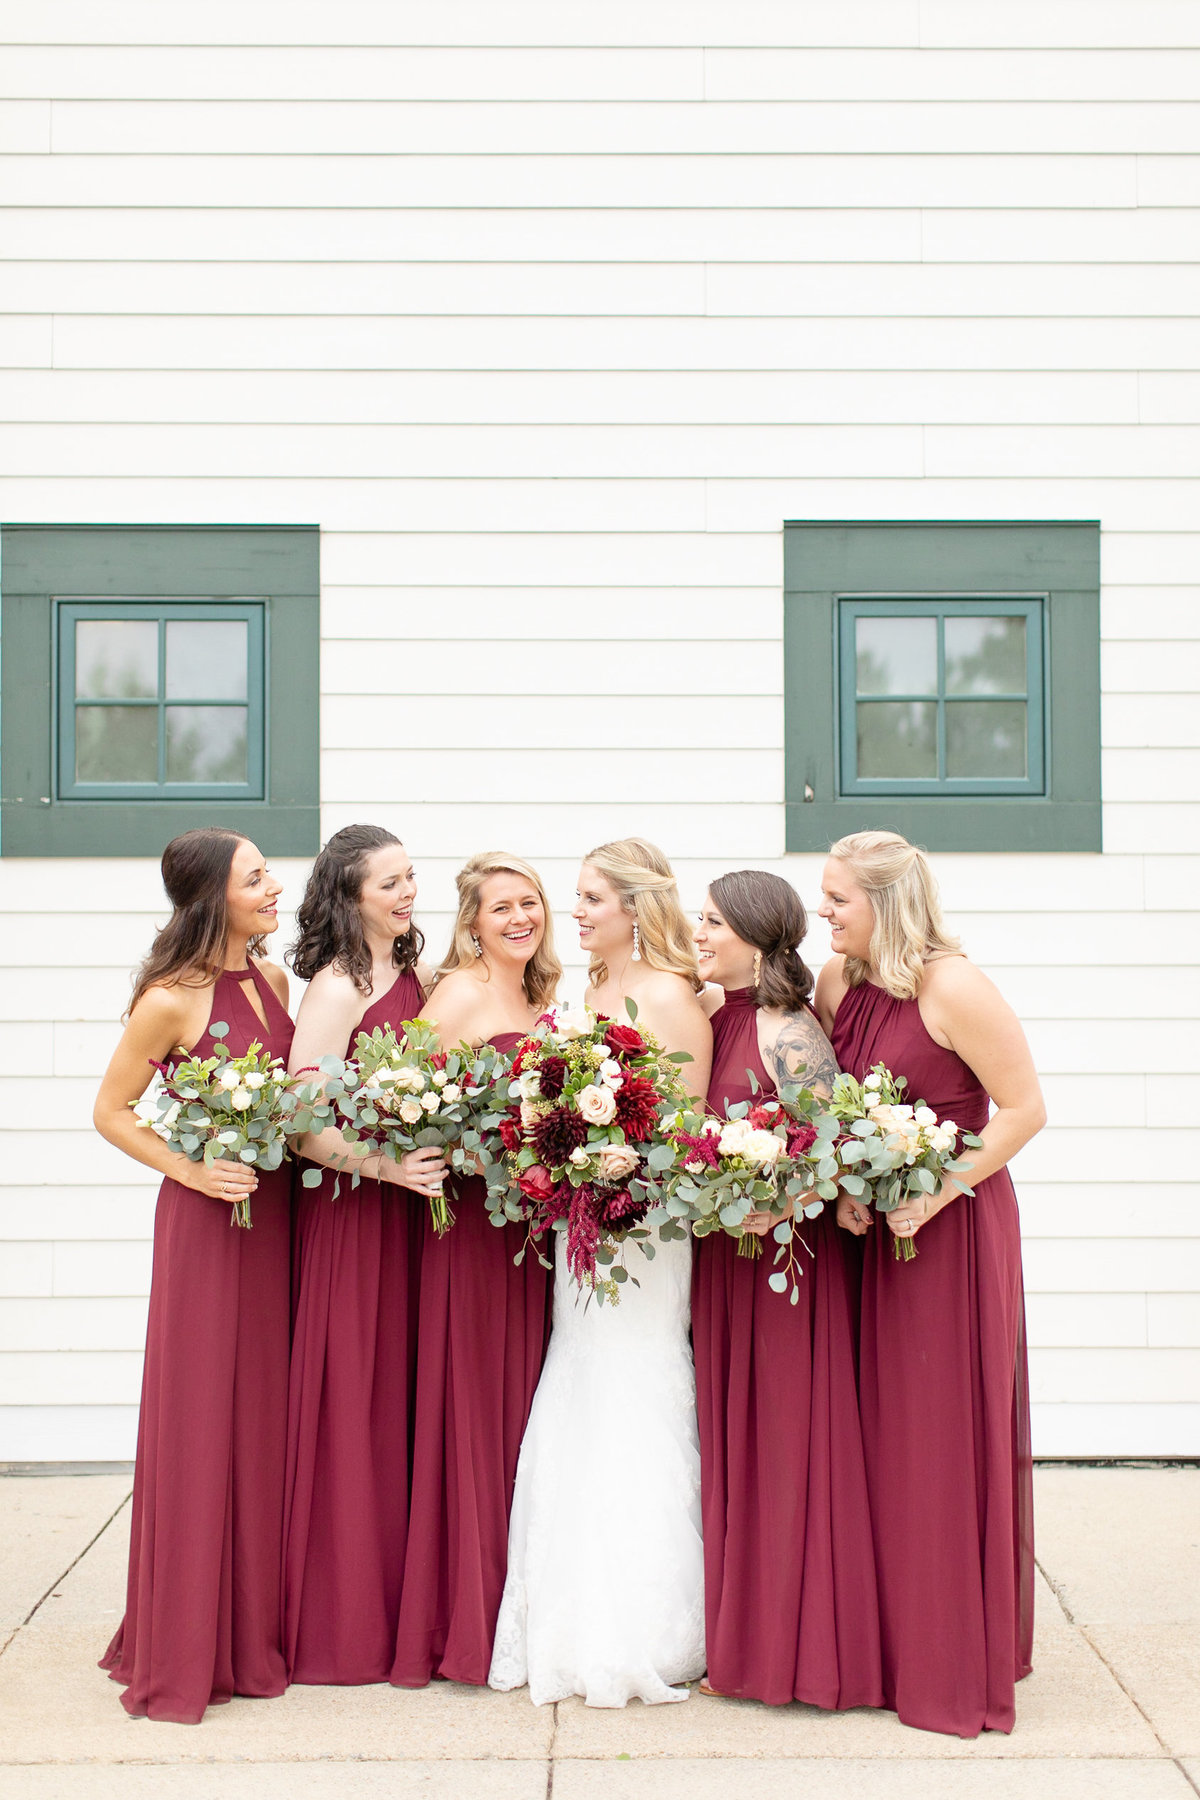 Jenna Ahmad Wedding-Bridal Party-0027